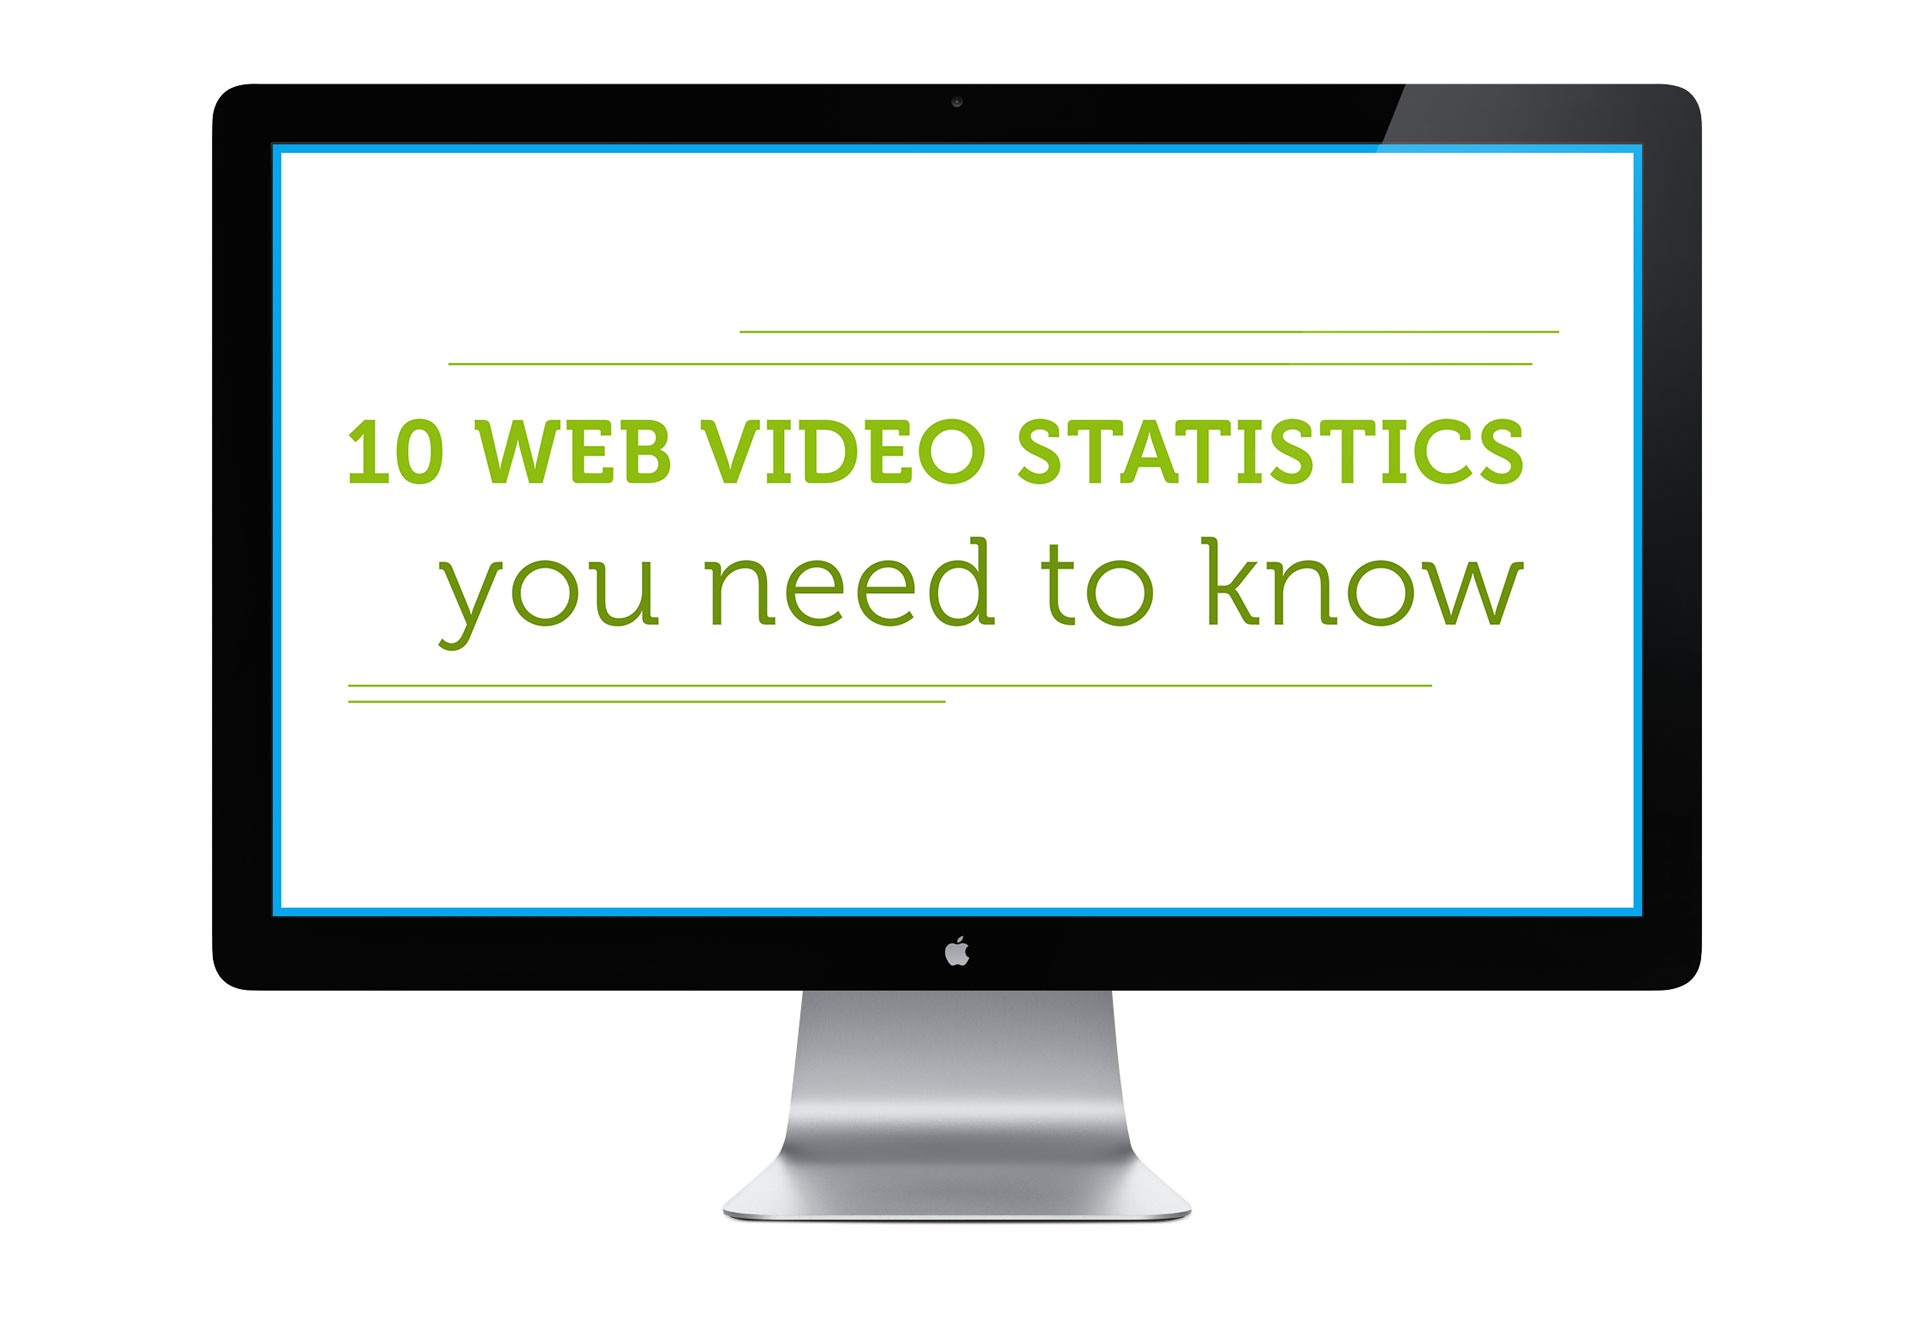 10 Web Video Statistics You Need To Know - Updated [INFOGRAPHIC]